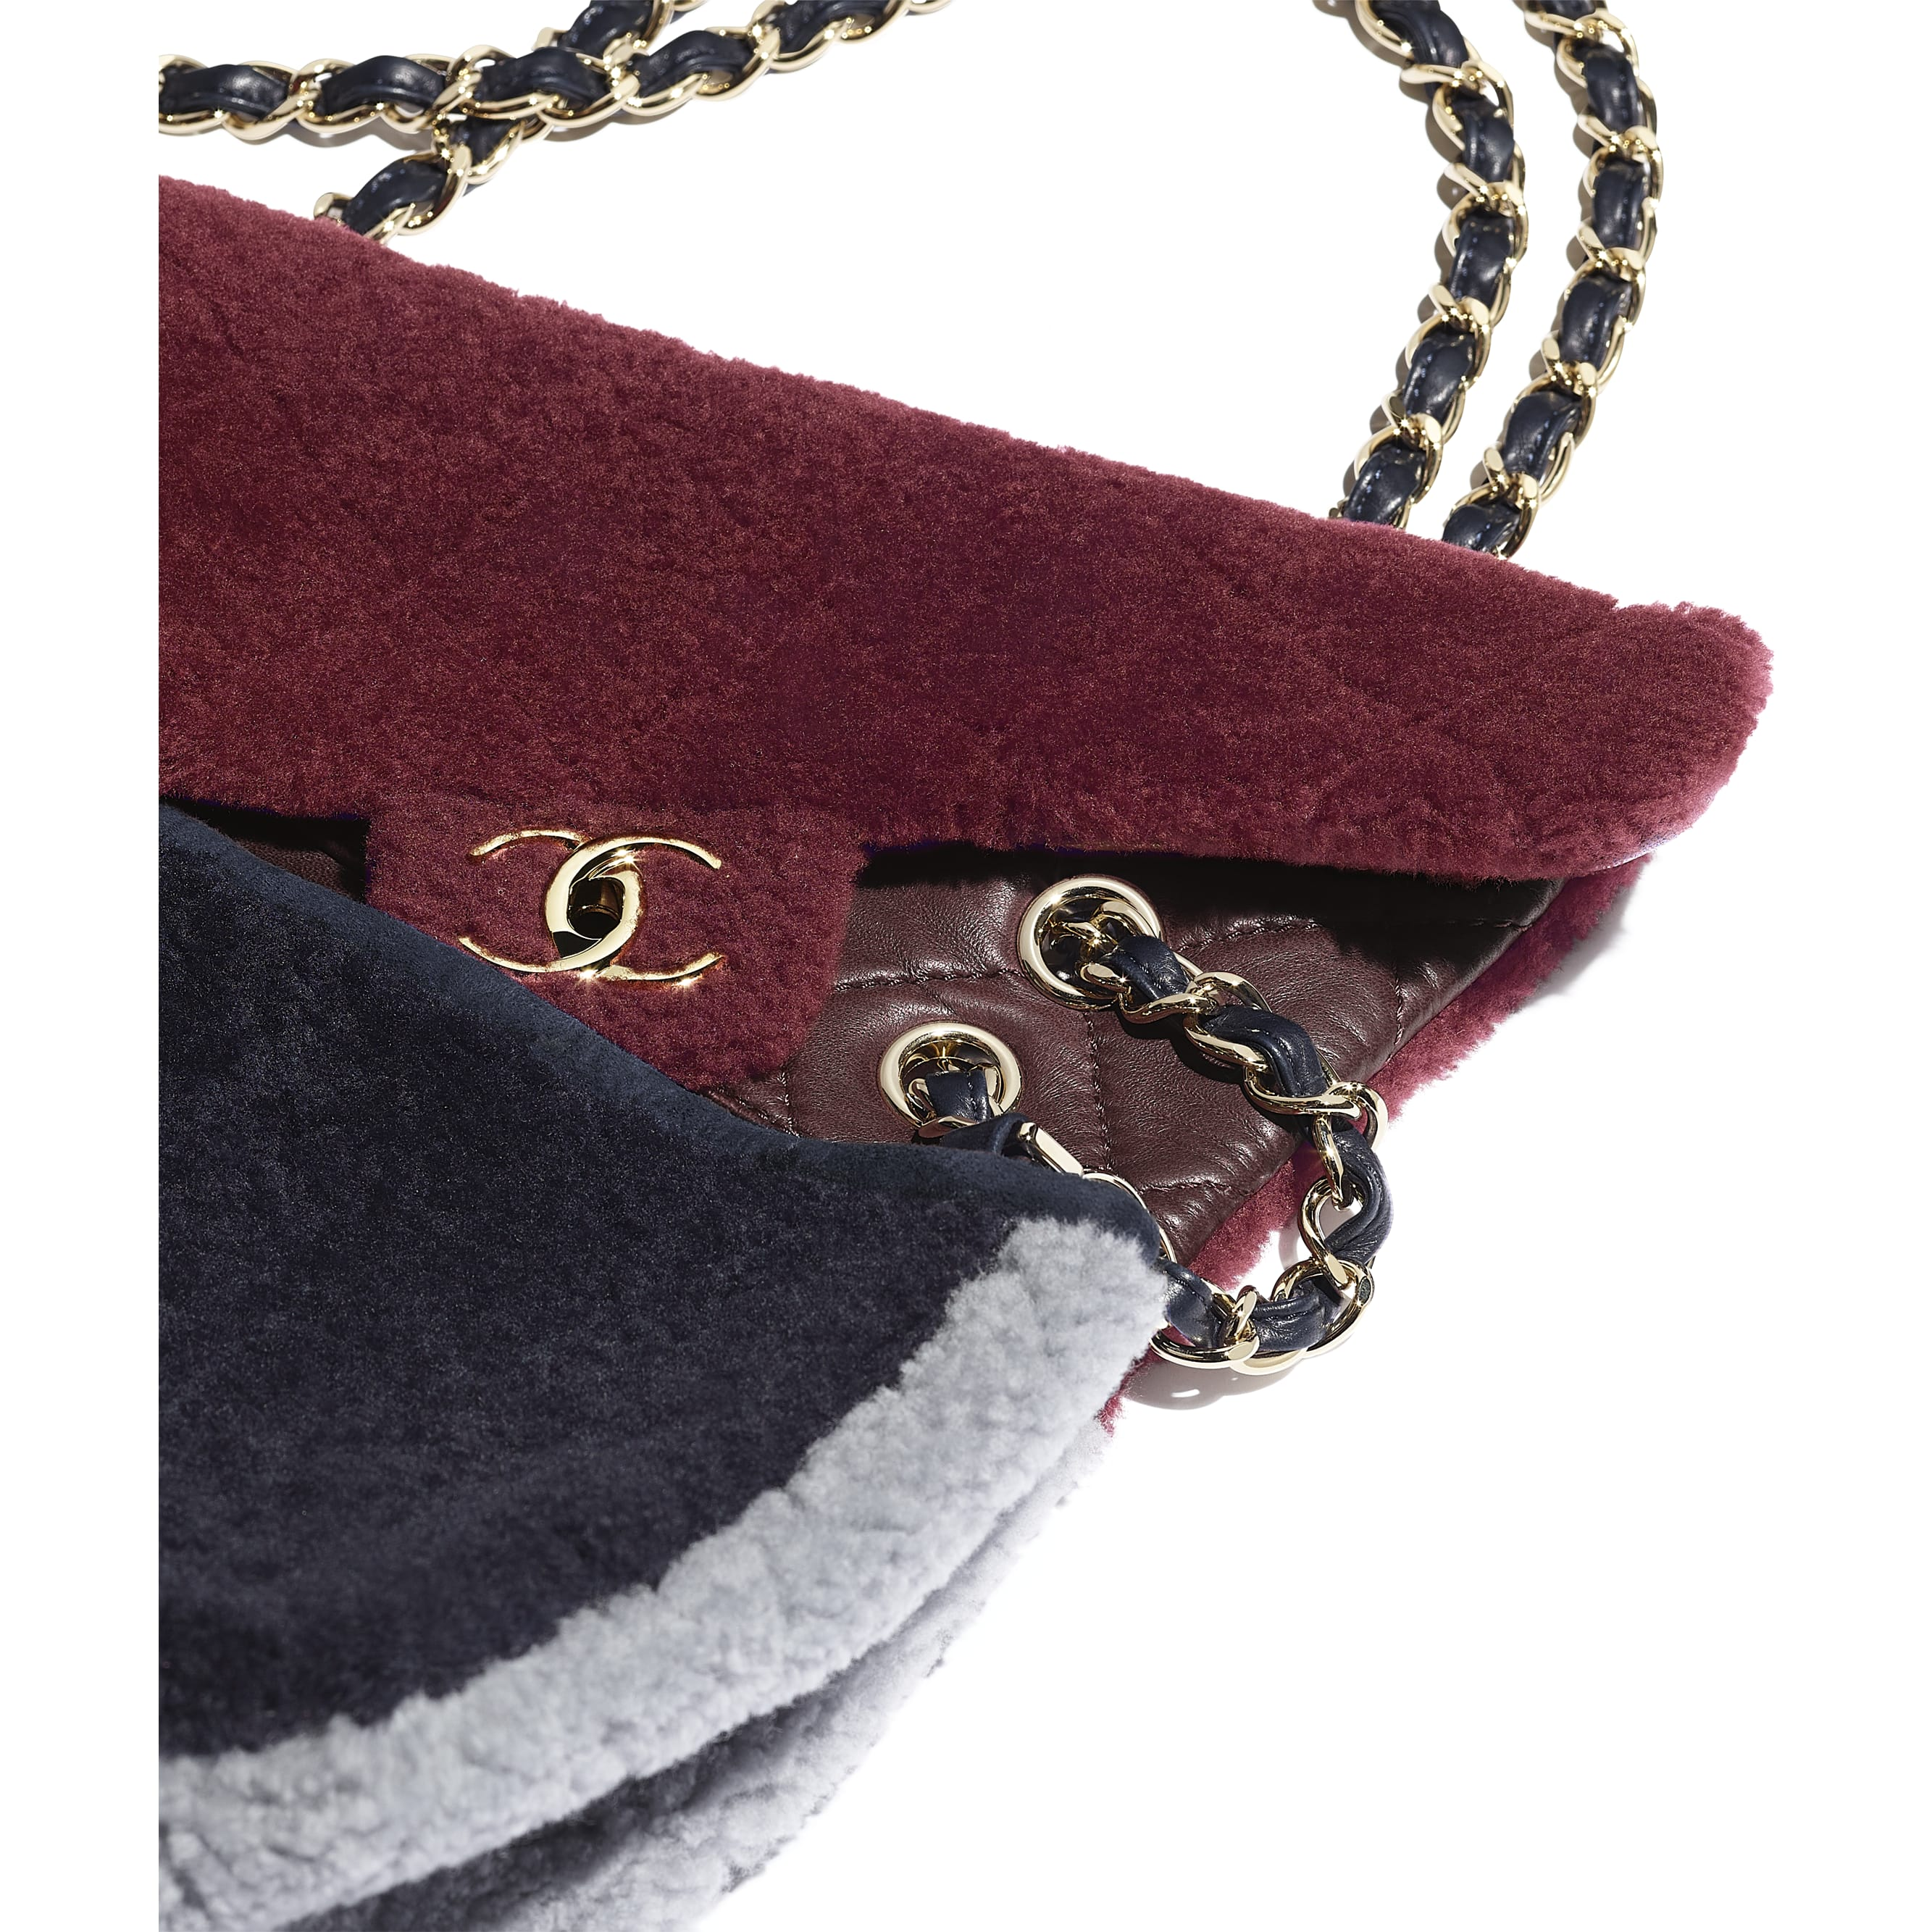 Flap Bag - Burgundy, Navy Blue & Gray - Shearling Sheepskin & Gold-Tone Metal - Extra view - see standard sized version